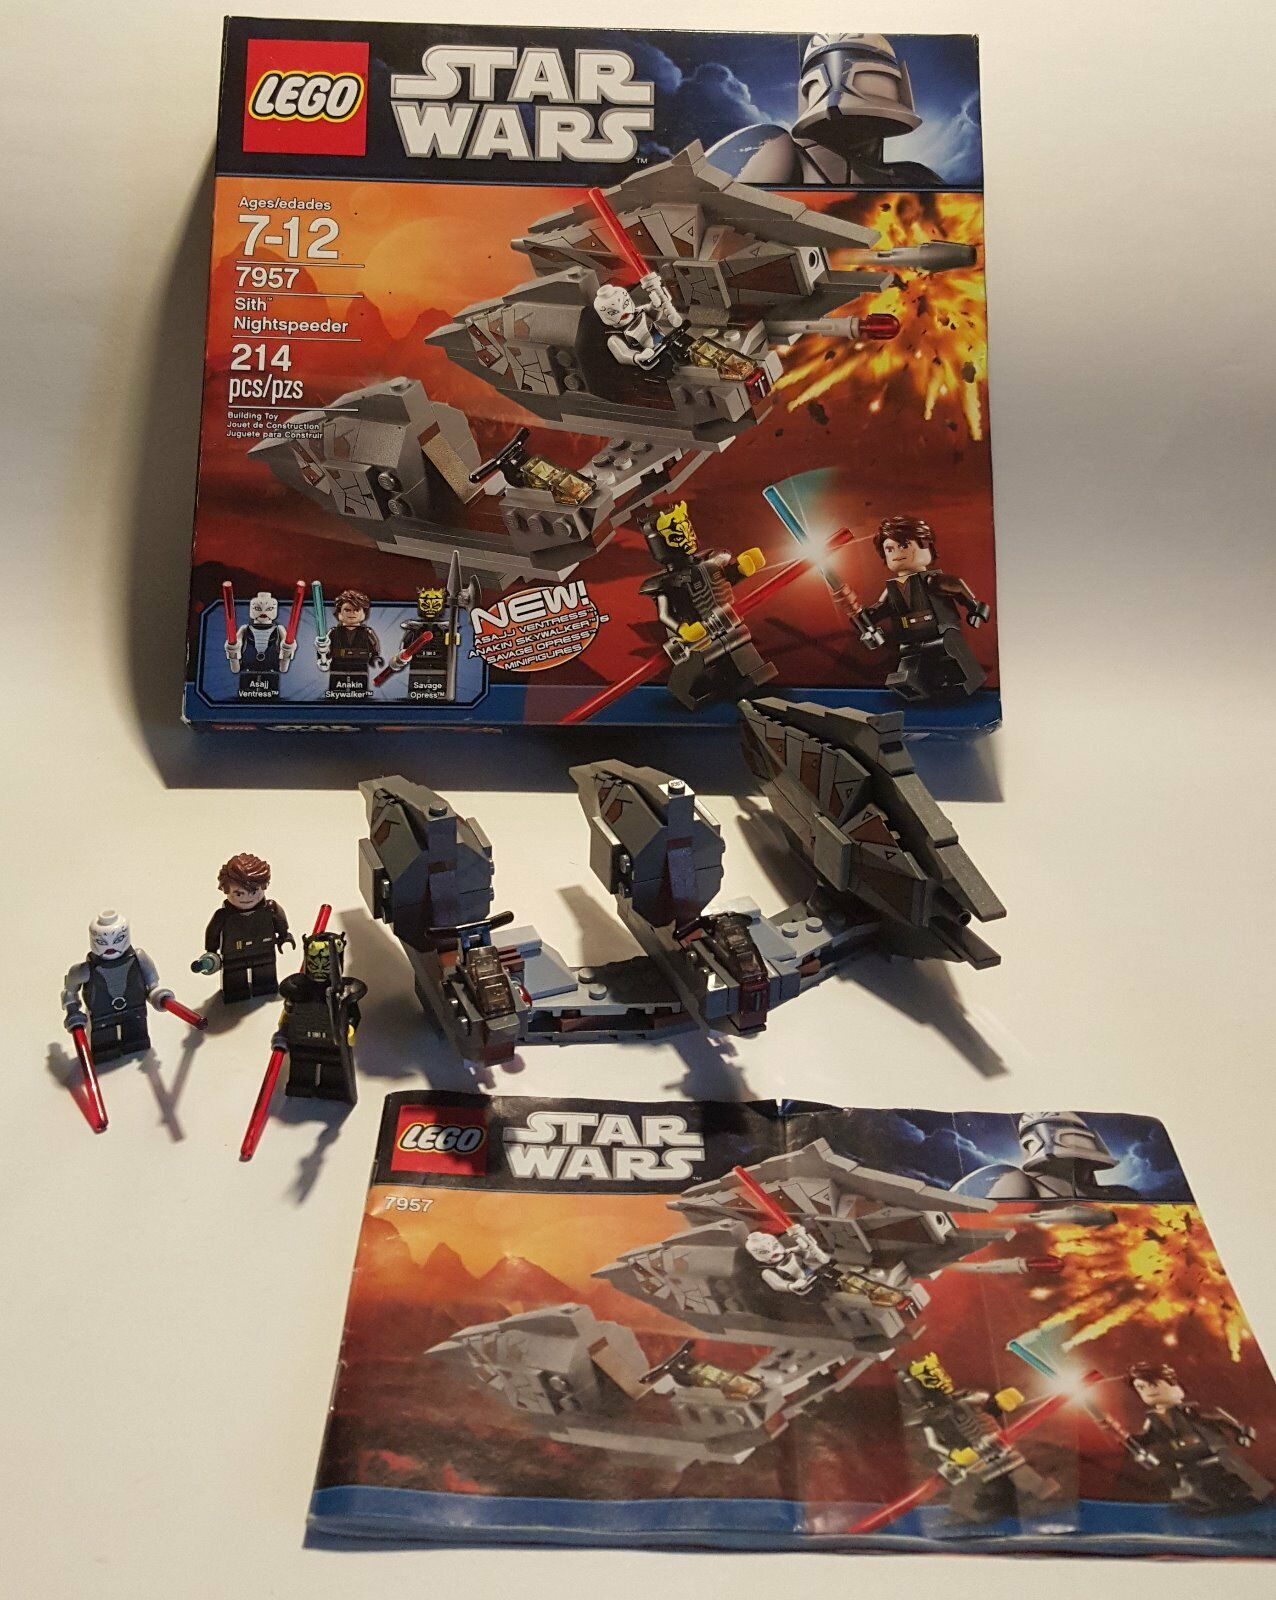 Lego Star Wars  7957 Sith Nightspeeder 214 pcs, ages 7-12, 100% complete